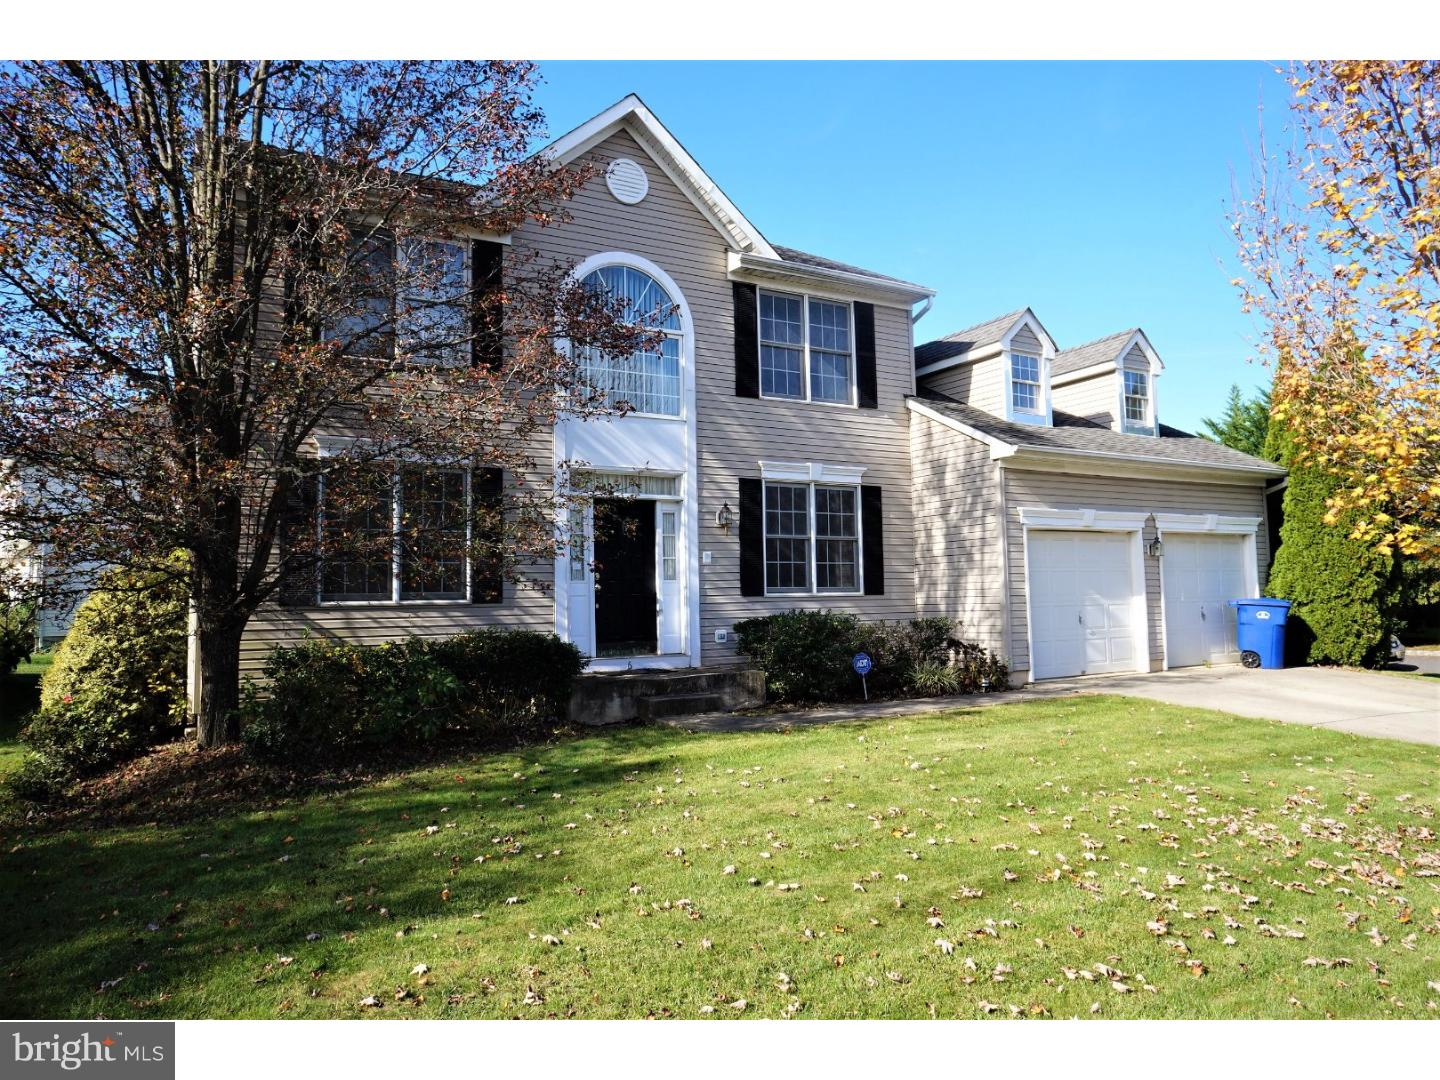 Single Family Home for Sale at 6 AUGUSTA Drive Westampton Township, New Jersey 08060 United States